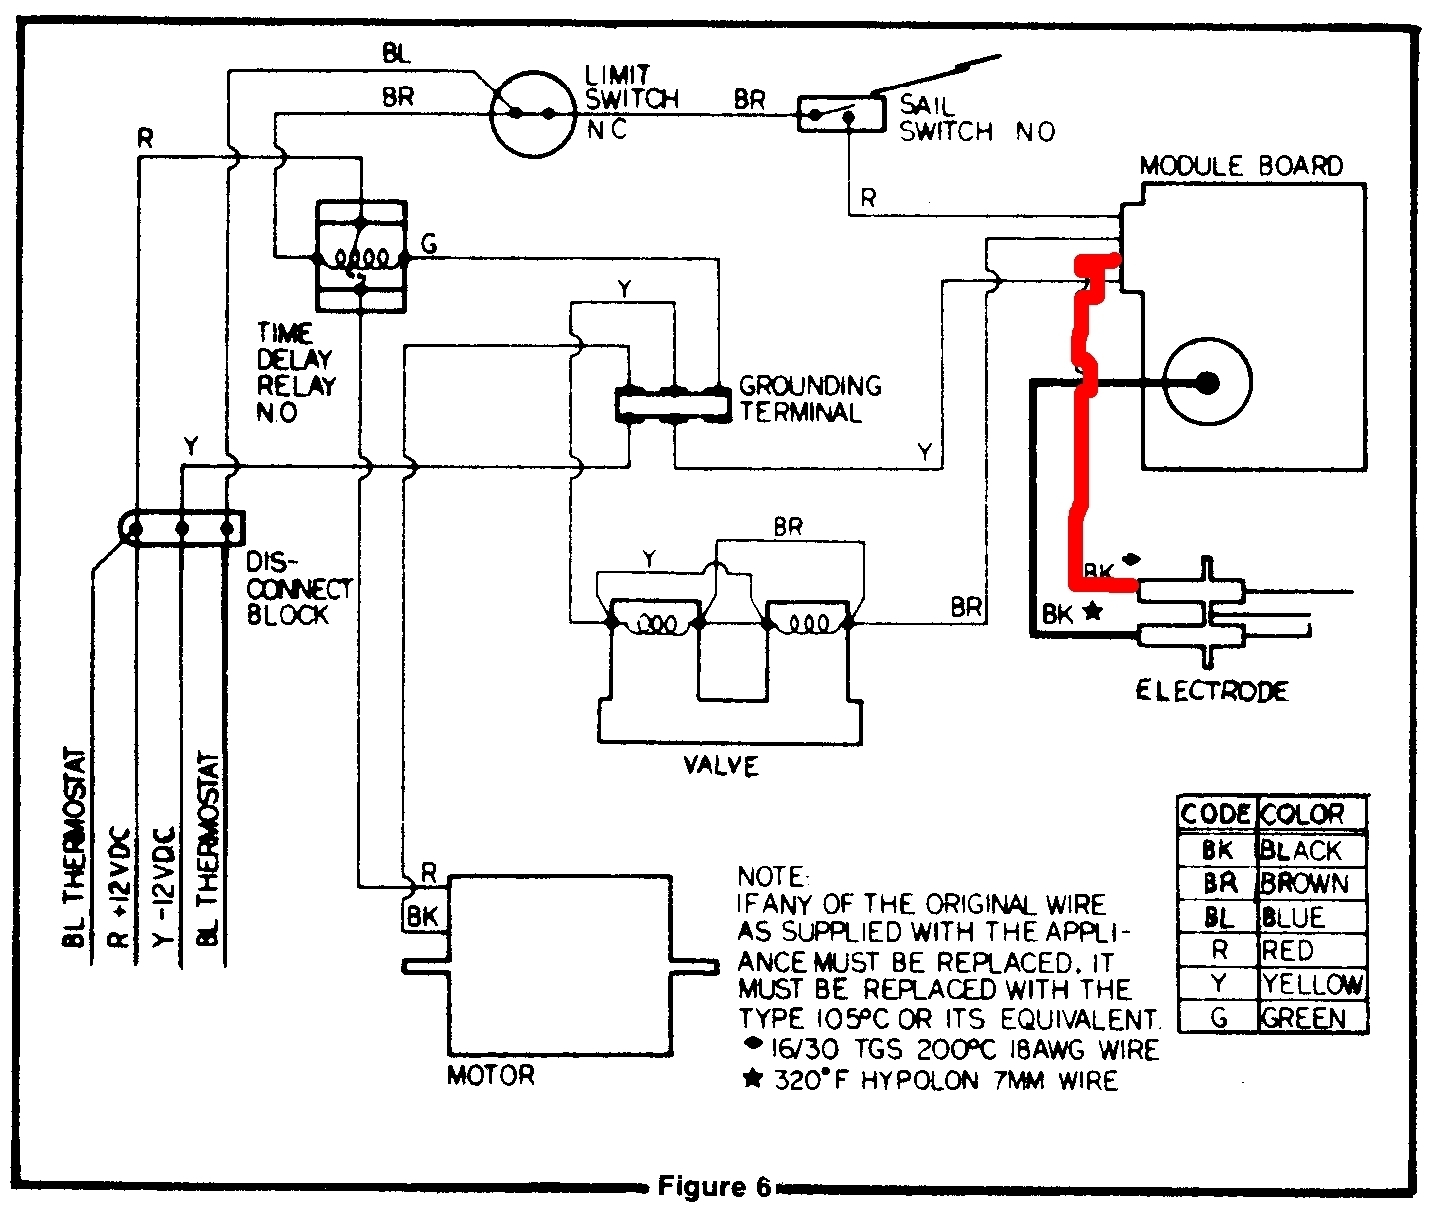 hight resolution of dometic rm2652 wiring schematic best secret wiring diagram u2022 rv refrigerator wiring diagram dometic refrigerator wiring diagram